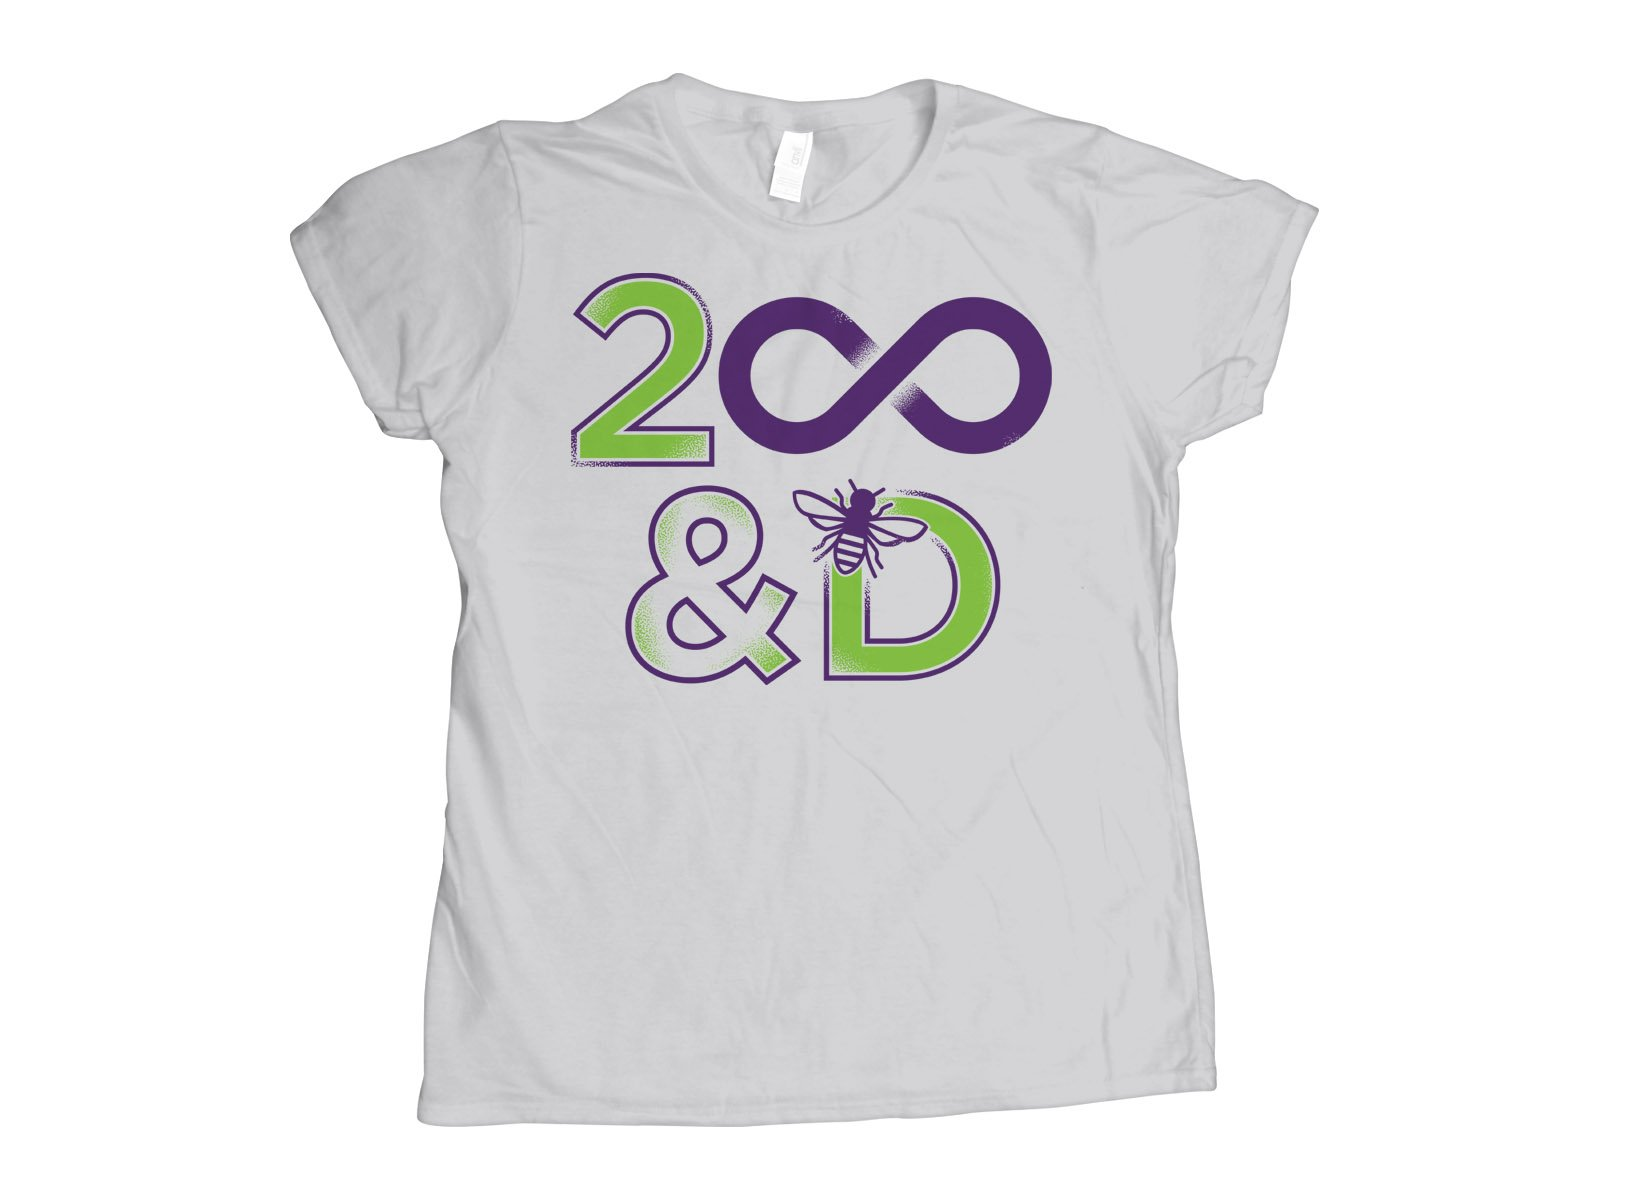 2 Infinity And B On D on Womens T-Shirt